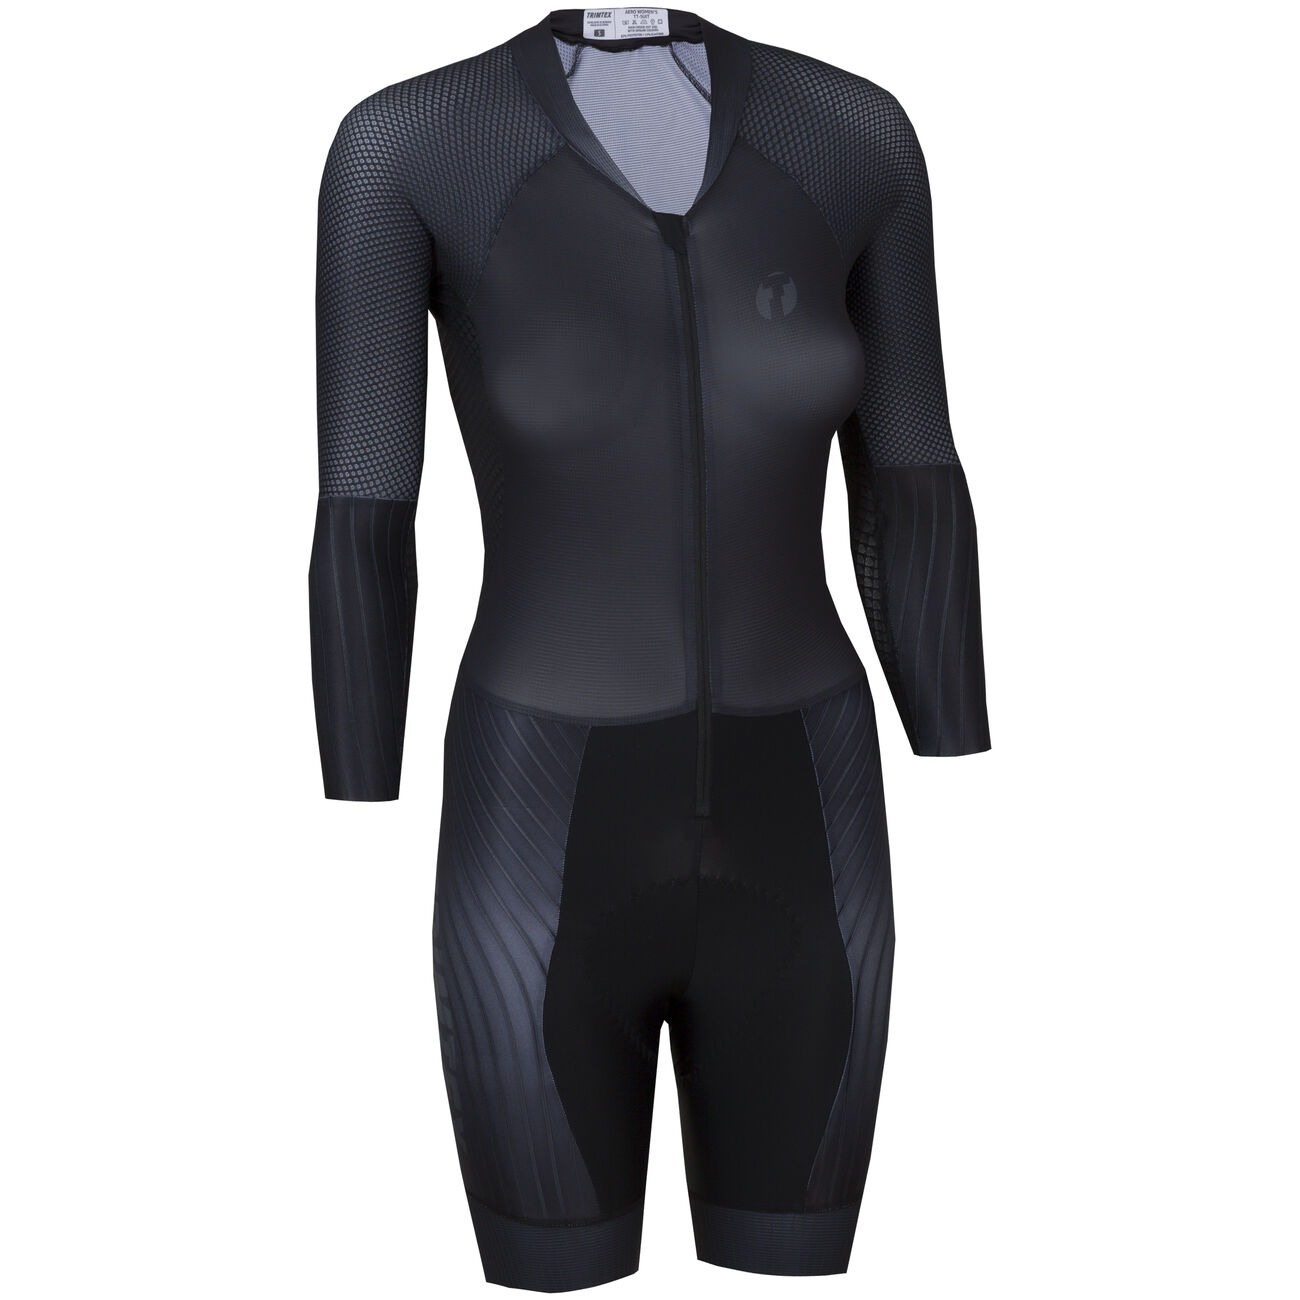 Aero Speedsuit women's